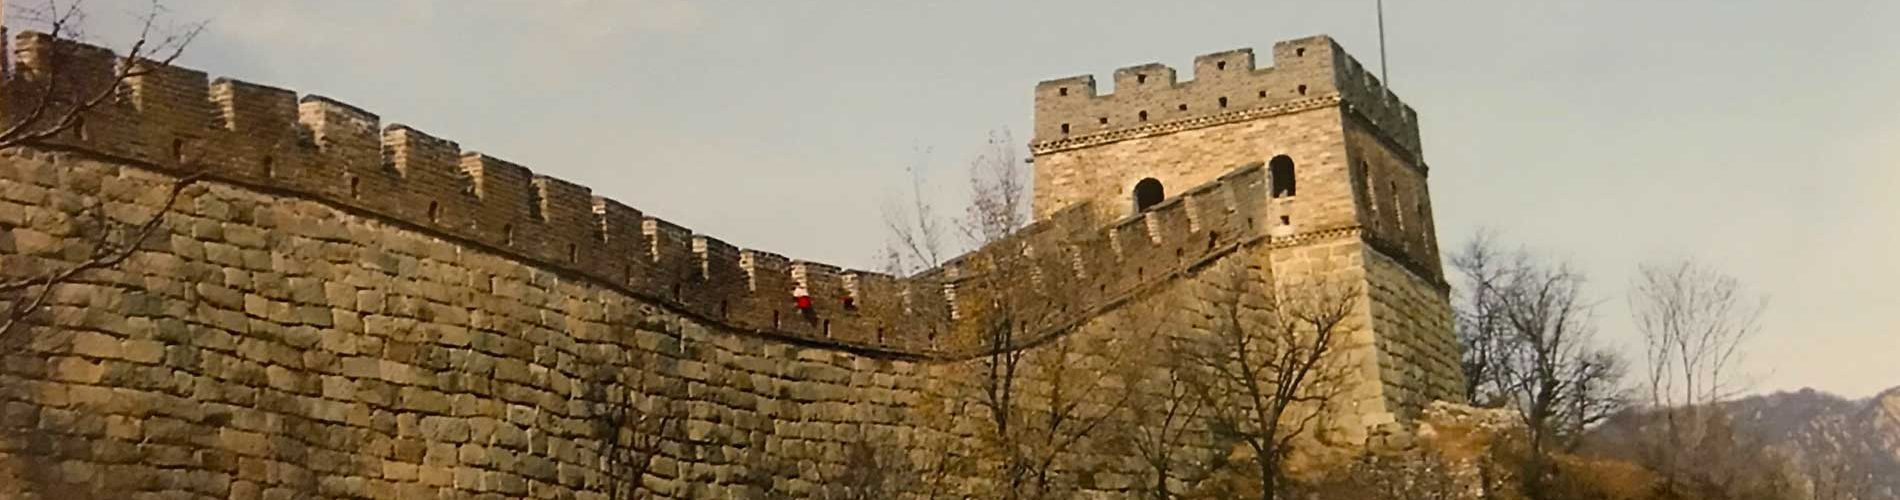 Great-wall-header